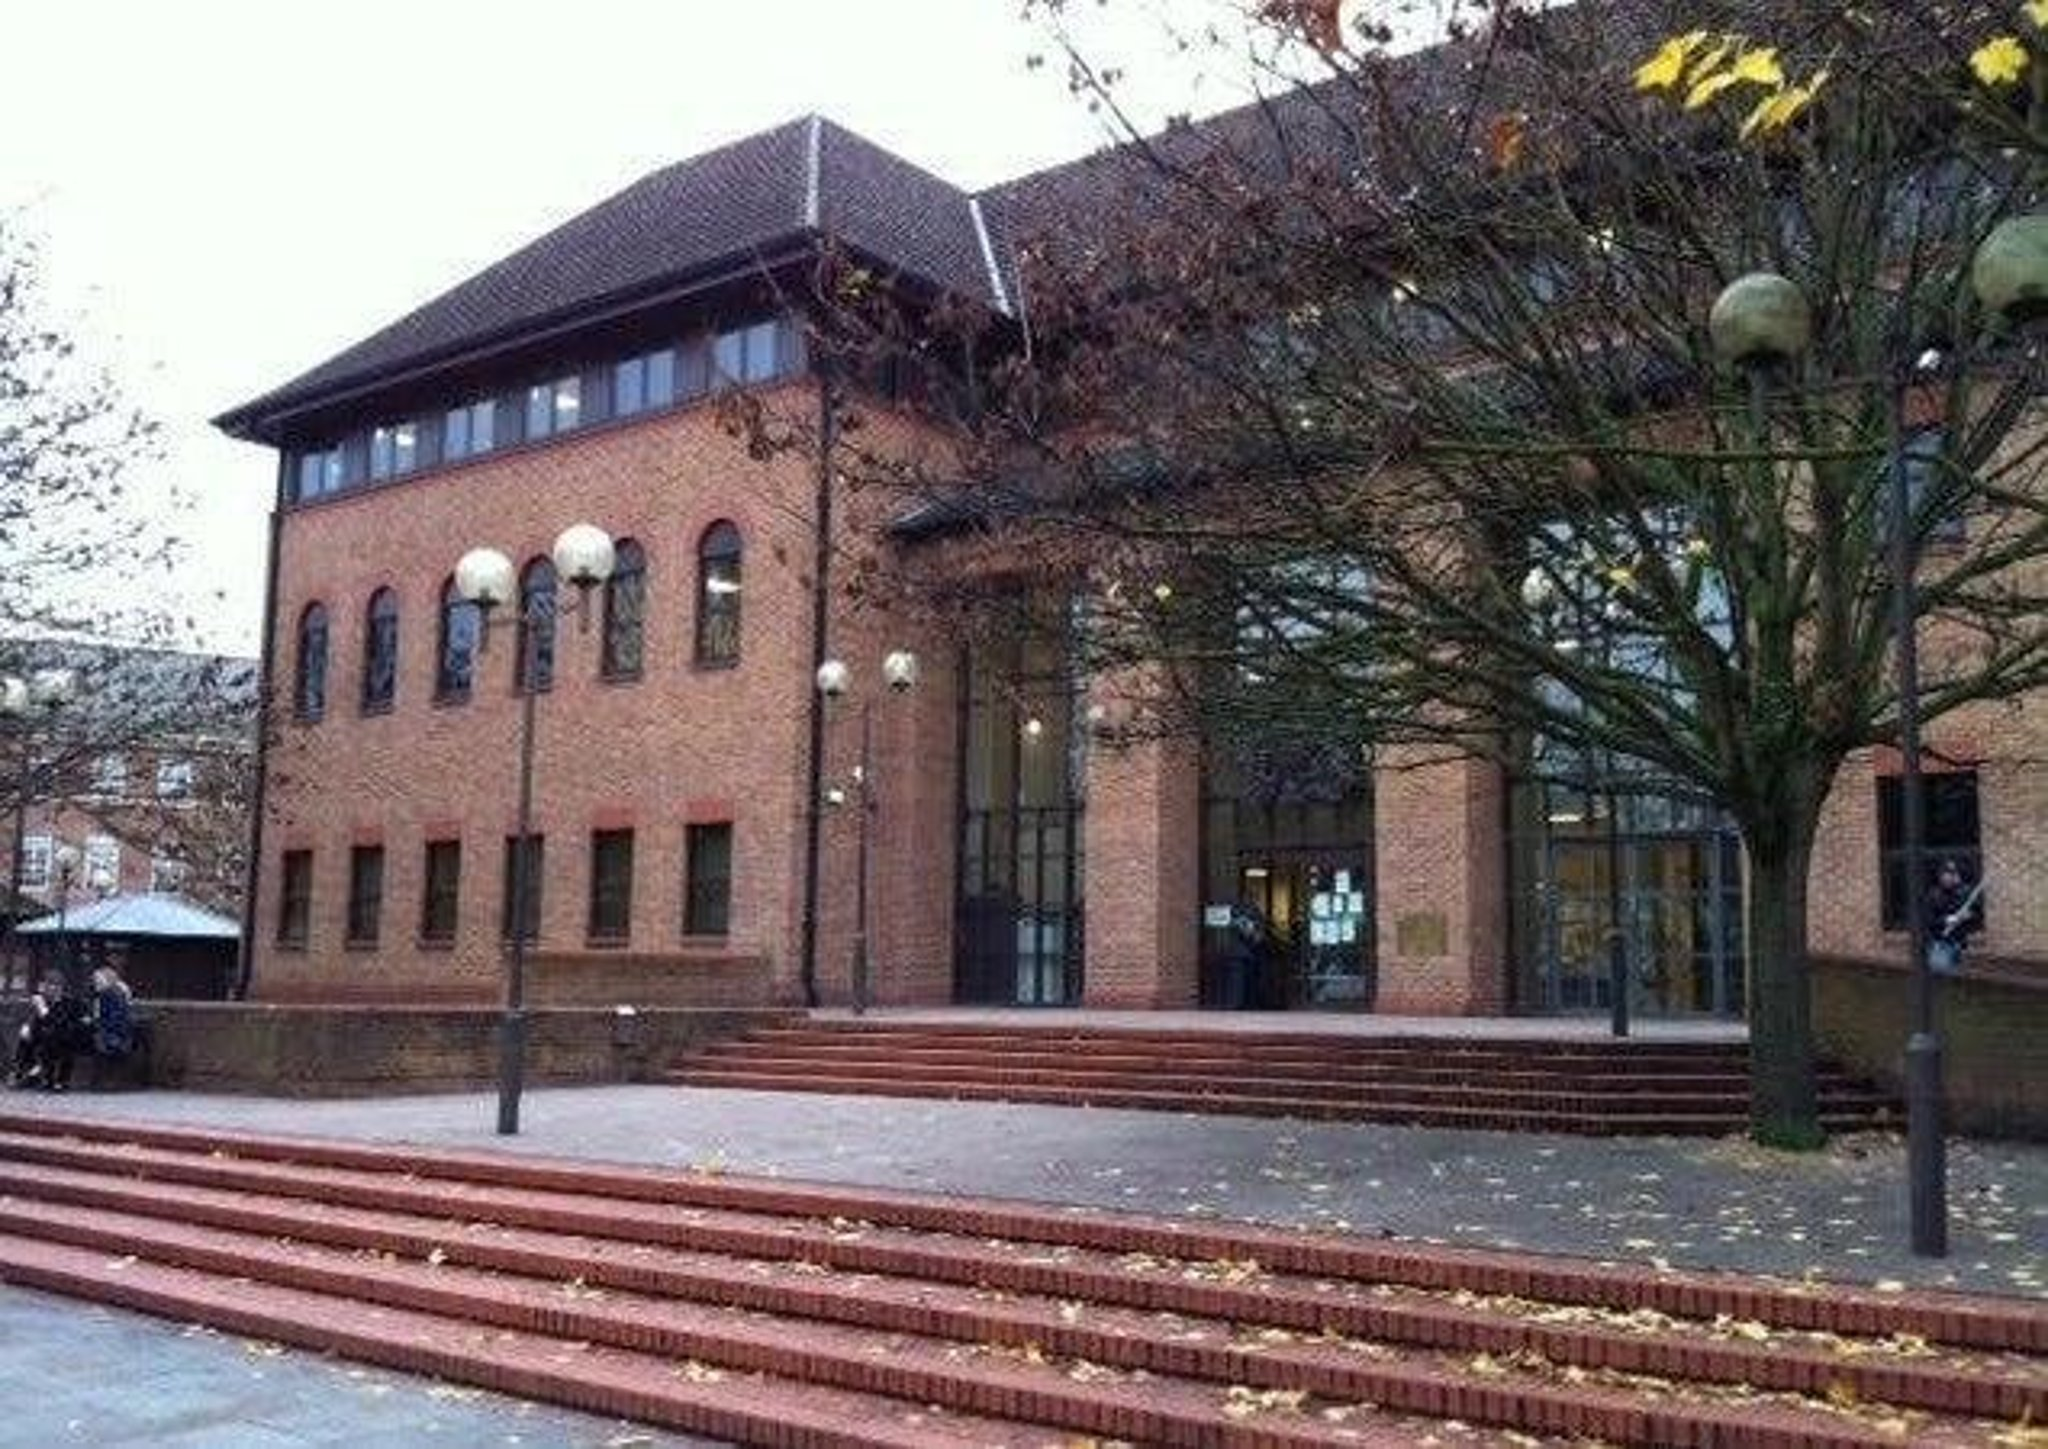 Trial set for Derbyshire woman charged with multiple sex